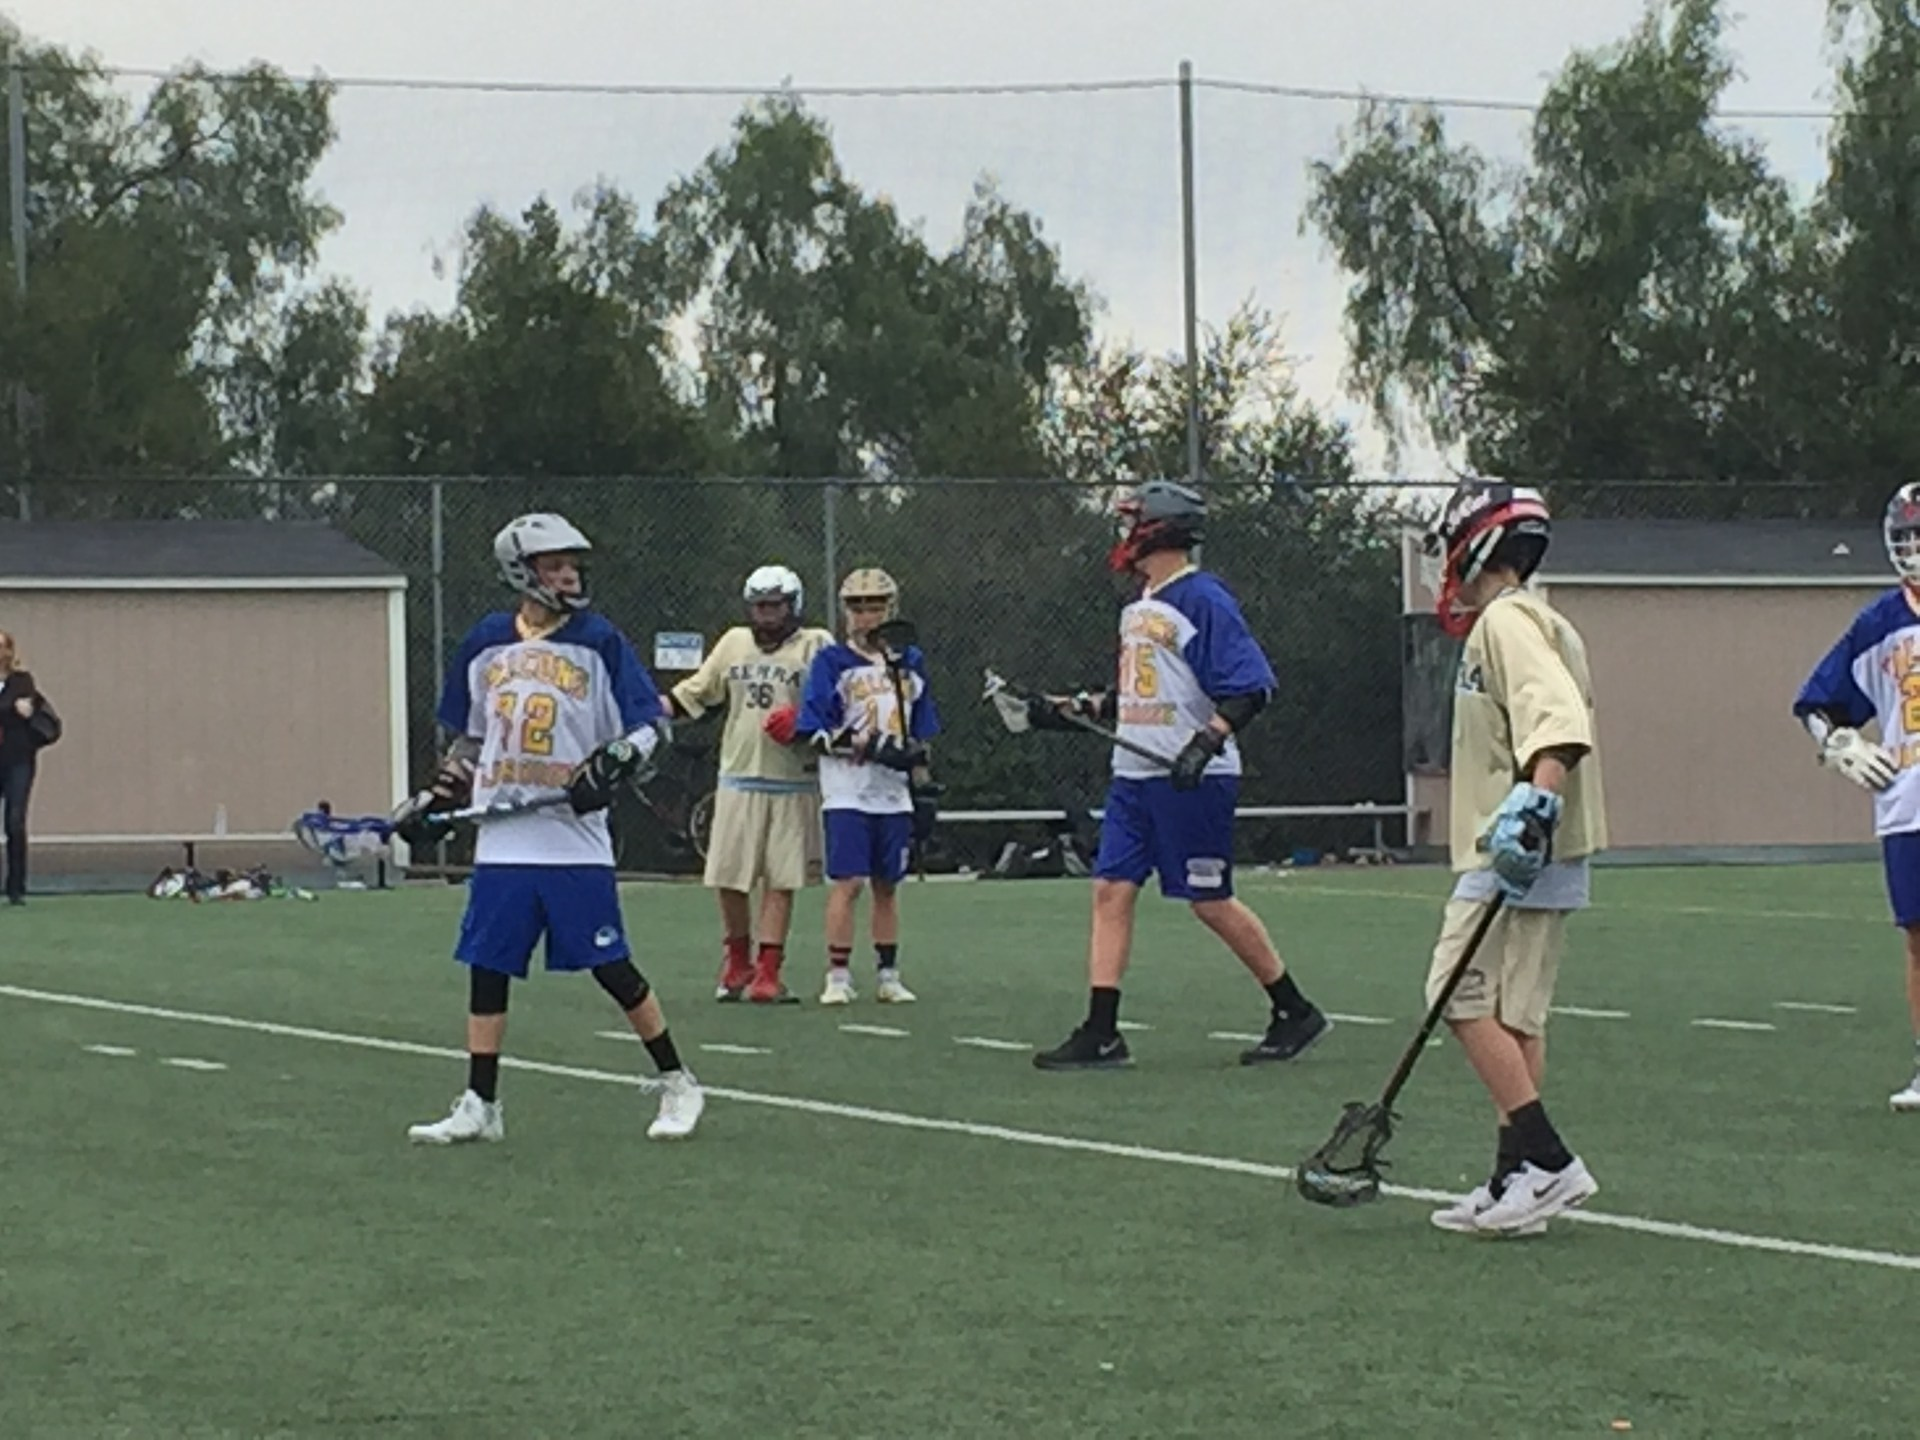 Boys playing lacrosse